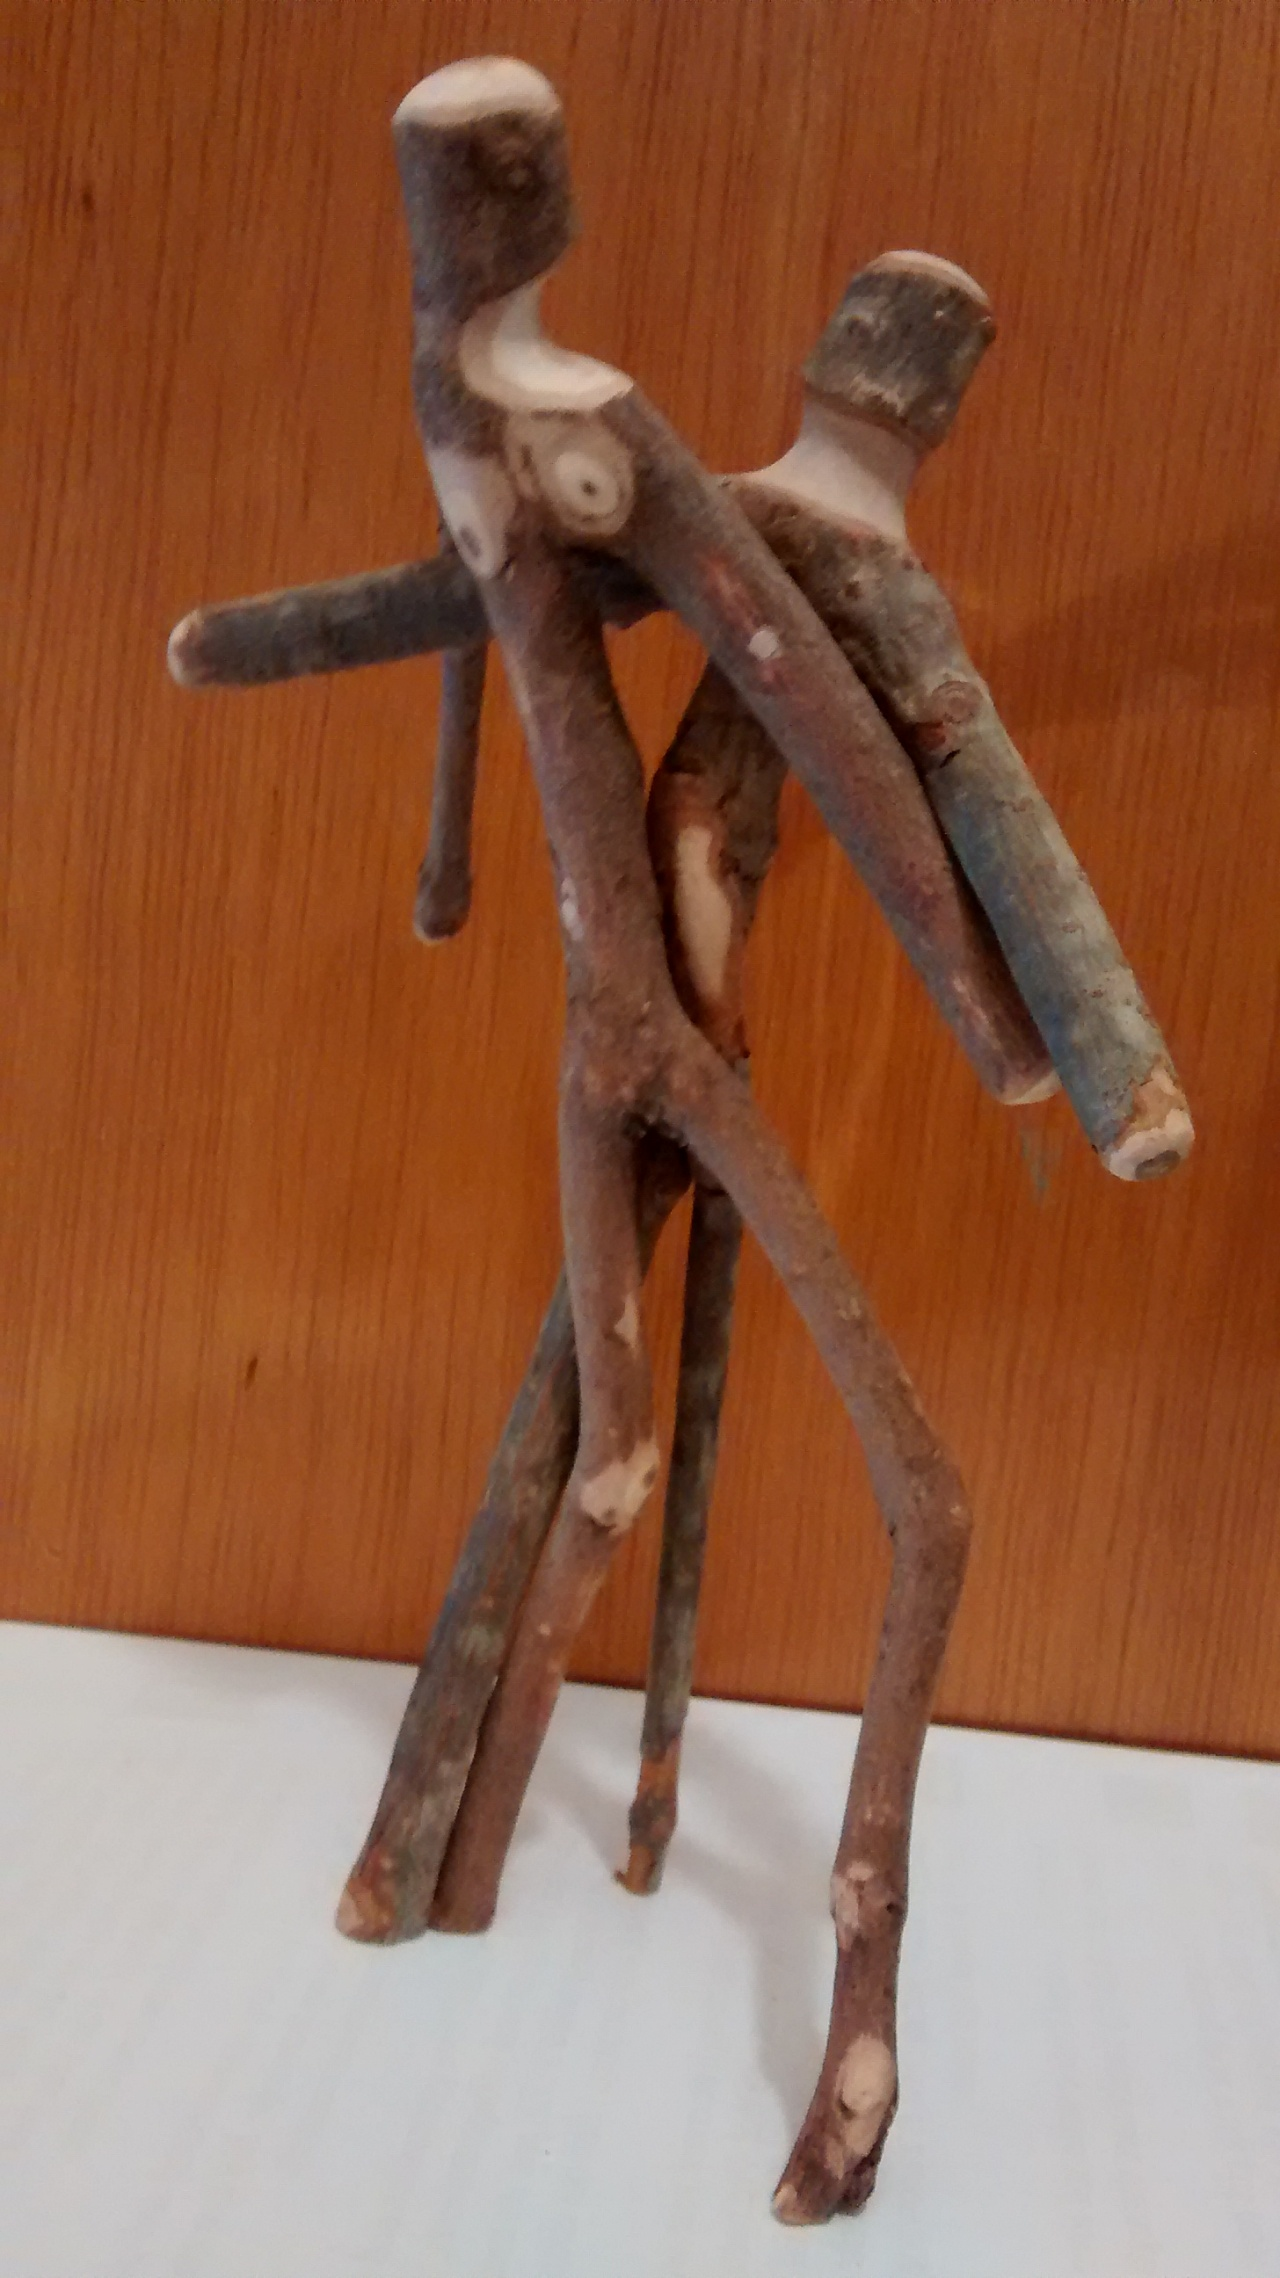 Sticking Together Arts and Crafts. Dancing Stick Couple#81115